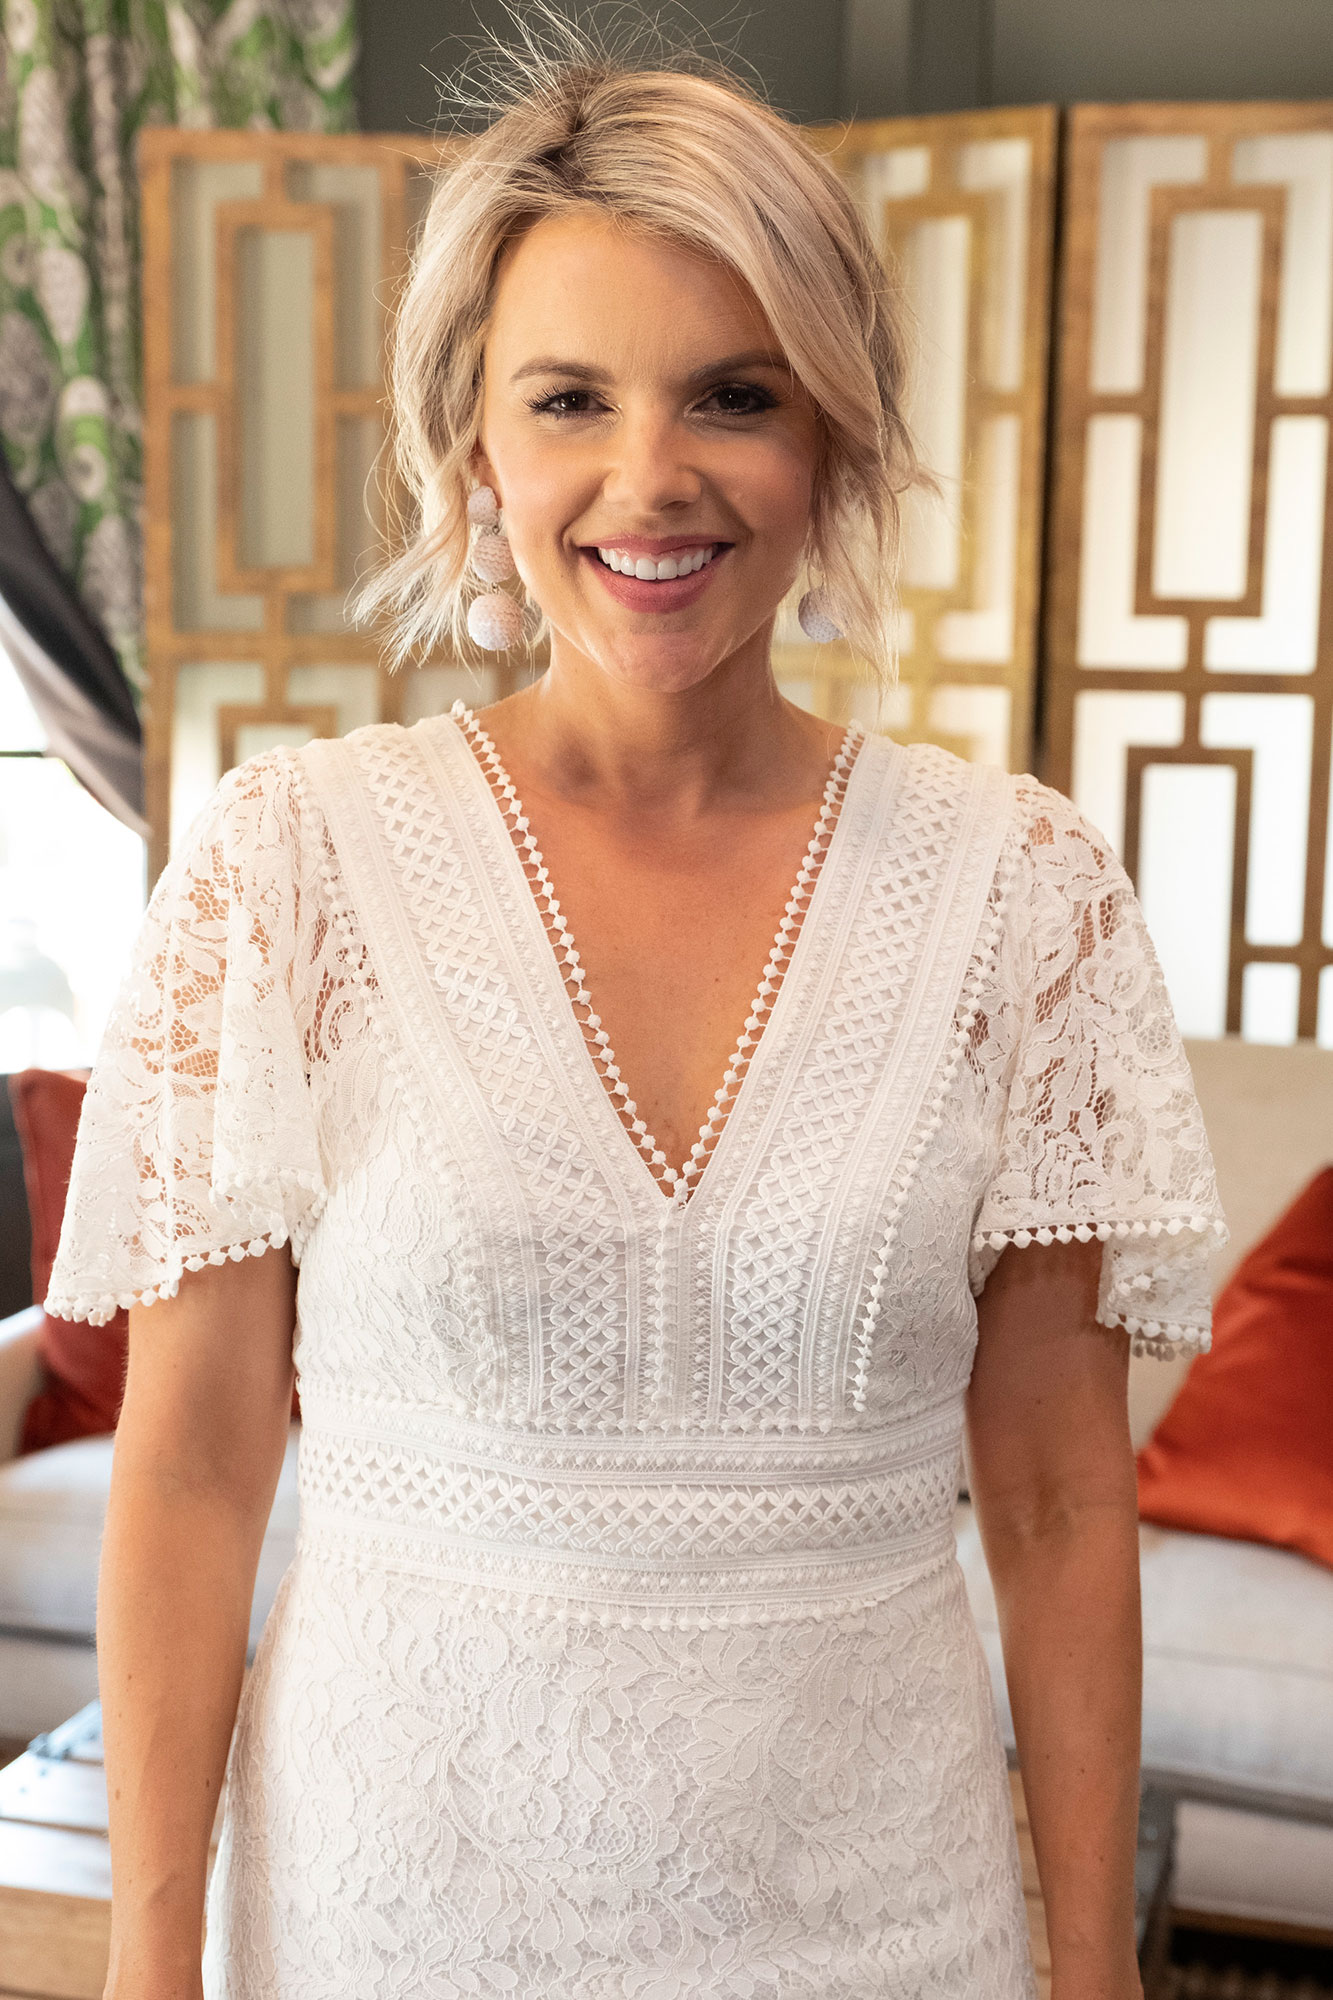 """Ali Fedotowsky """"Bachelorette Reunion: The Biggest Bachelorette Reunion in Bachelor History Ever!"""" - Fedotowsky began dating Kevin Manno after years of friendship . The two, who tied the knot in March 2017, share daughter Molly, 2, and son Riley, 11 months."""